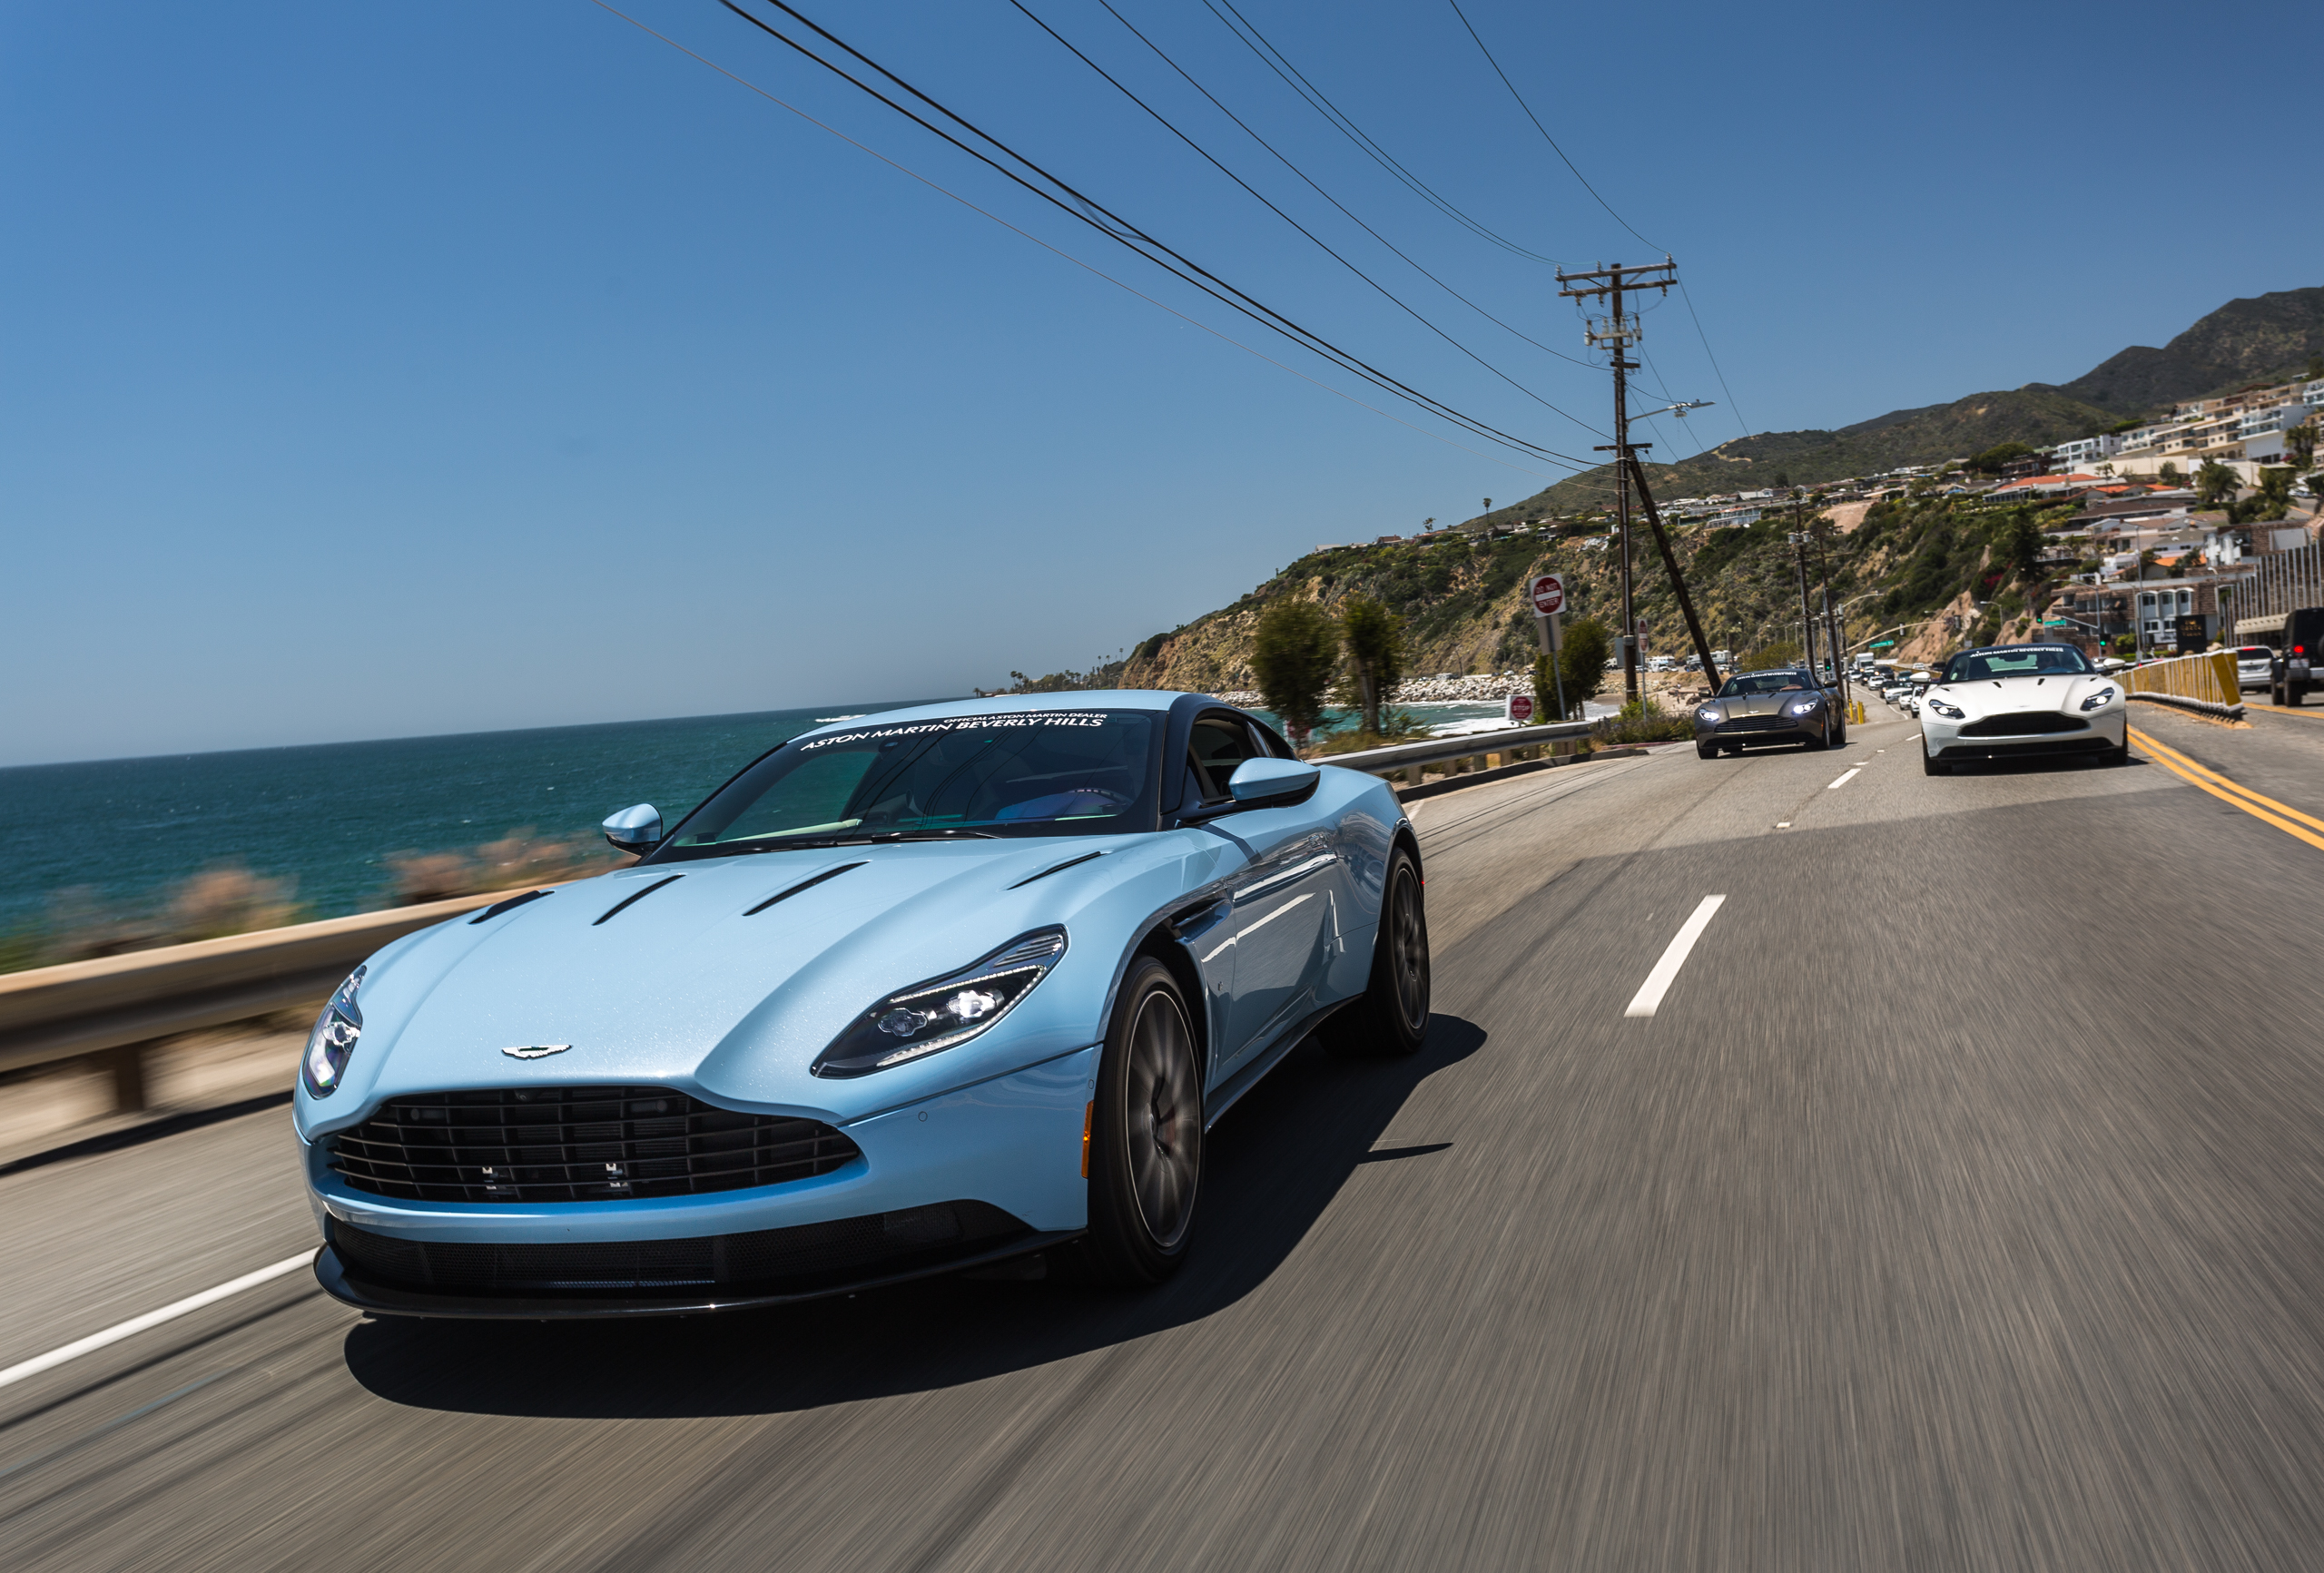 BRUNCH AT SOHO MALIBU - AN ASTON MARTIN BEVERLY HILLS DRIVE | WORLD ...